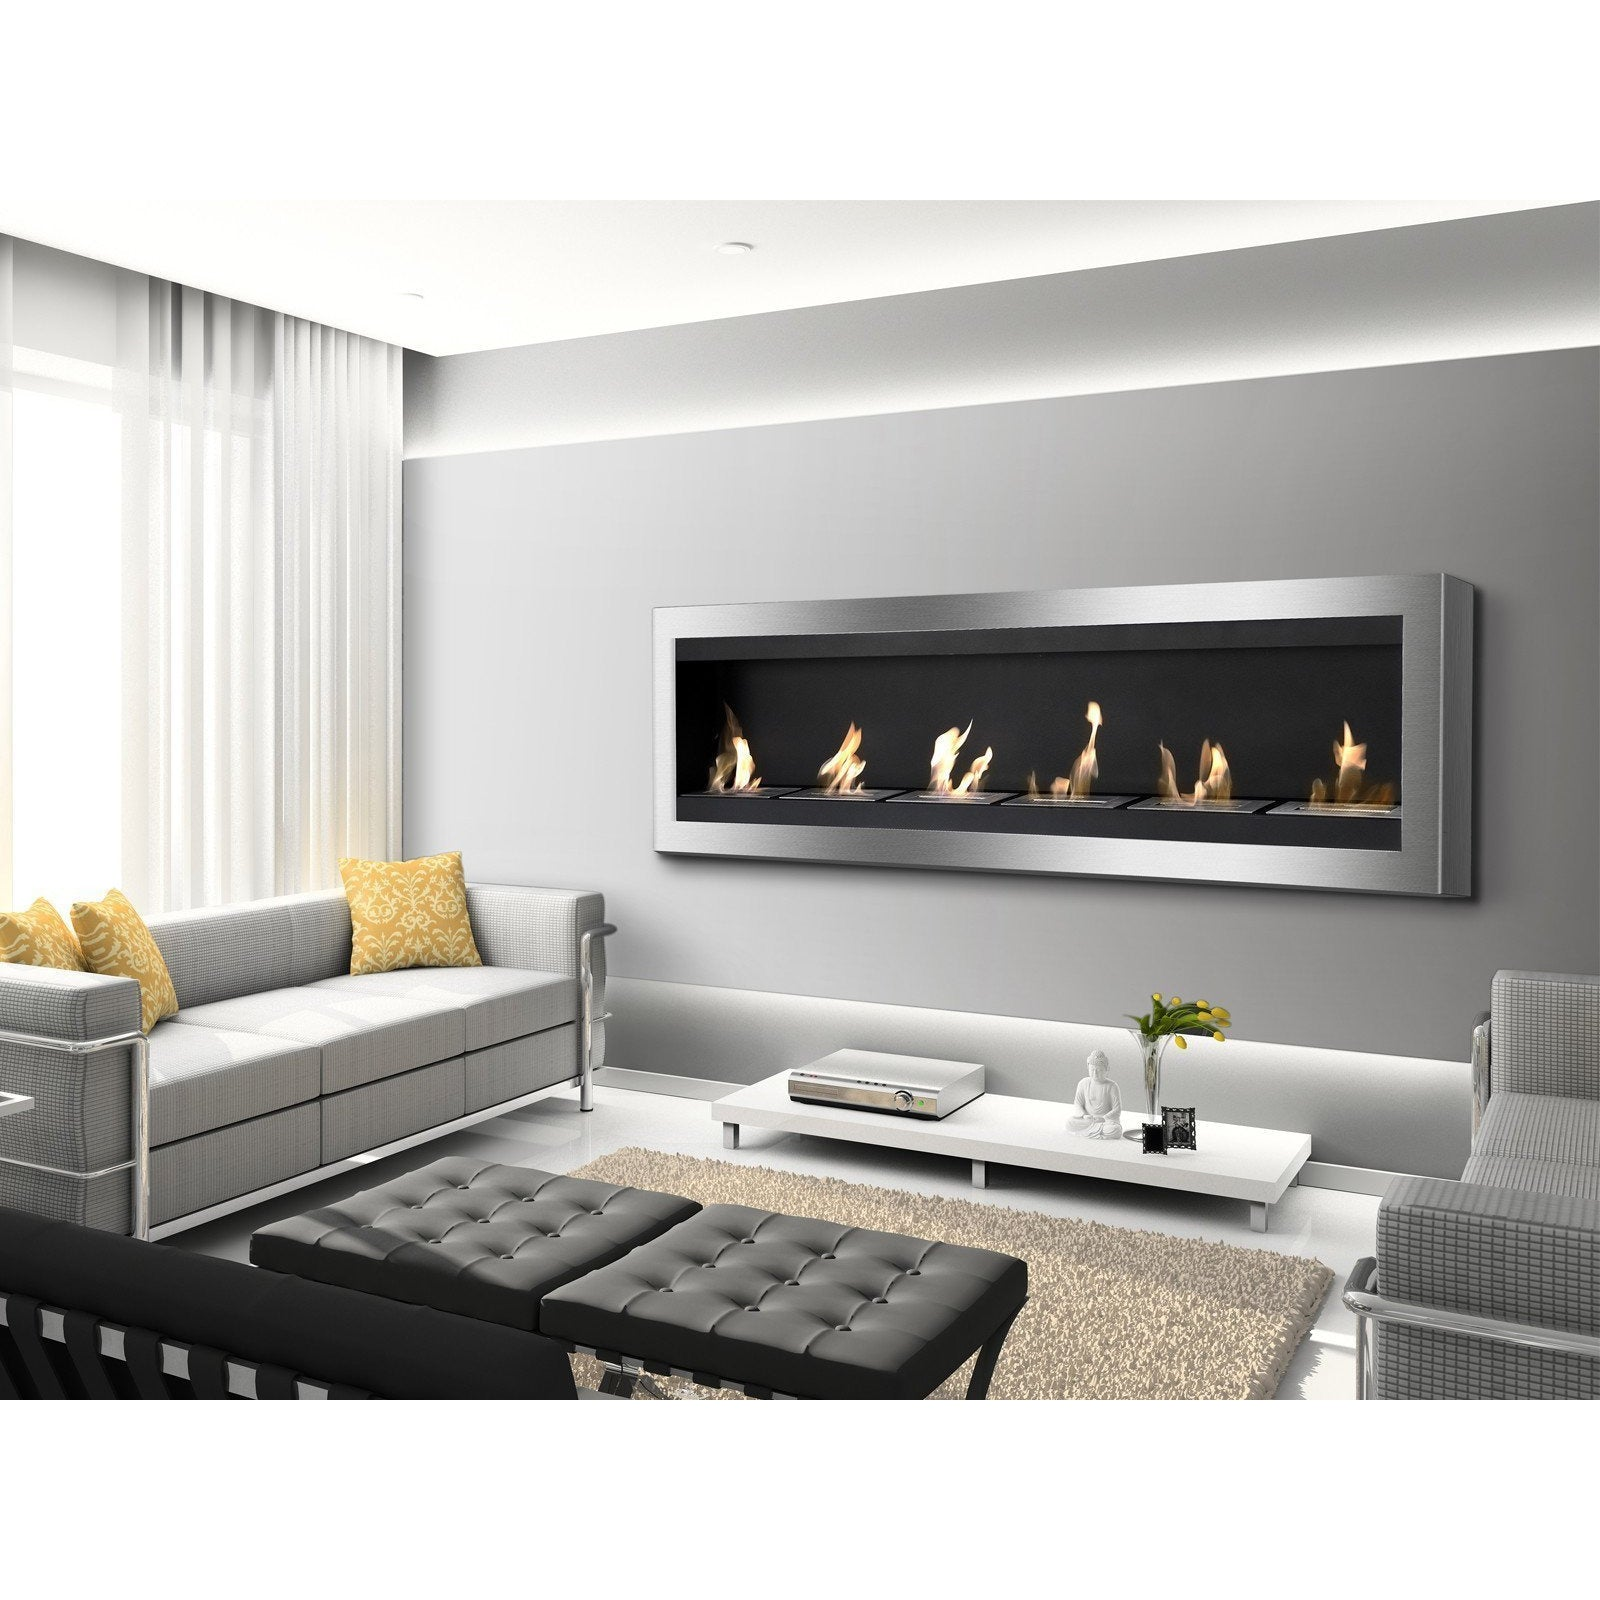 "Ethanol Fireplace - Ignis Maximum - 83"" Wall Mounted Ethanol Fireplace (WMF-012)"